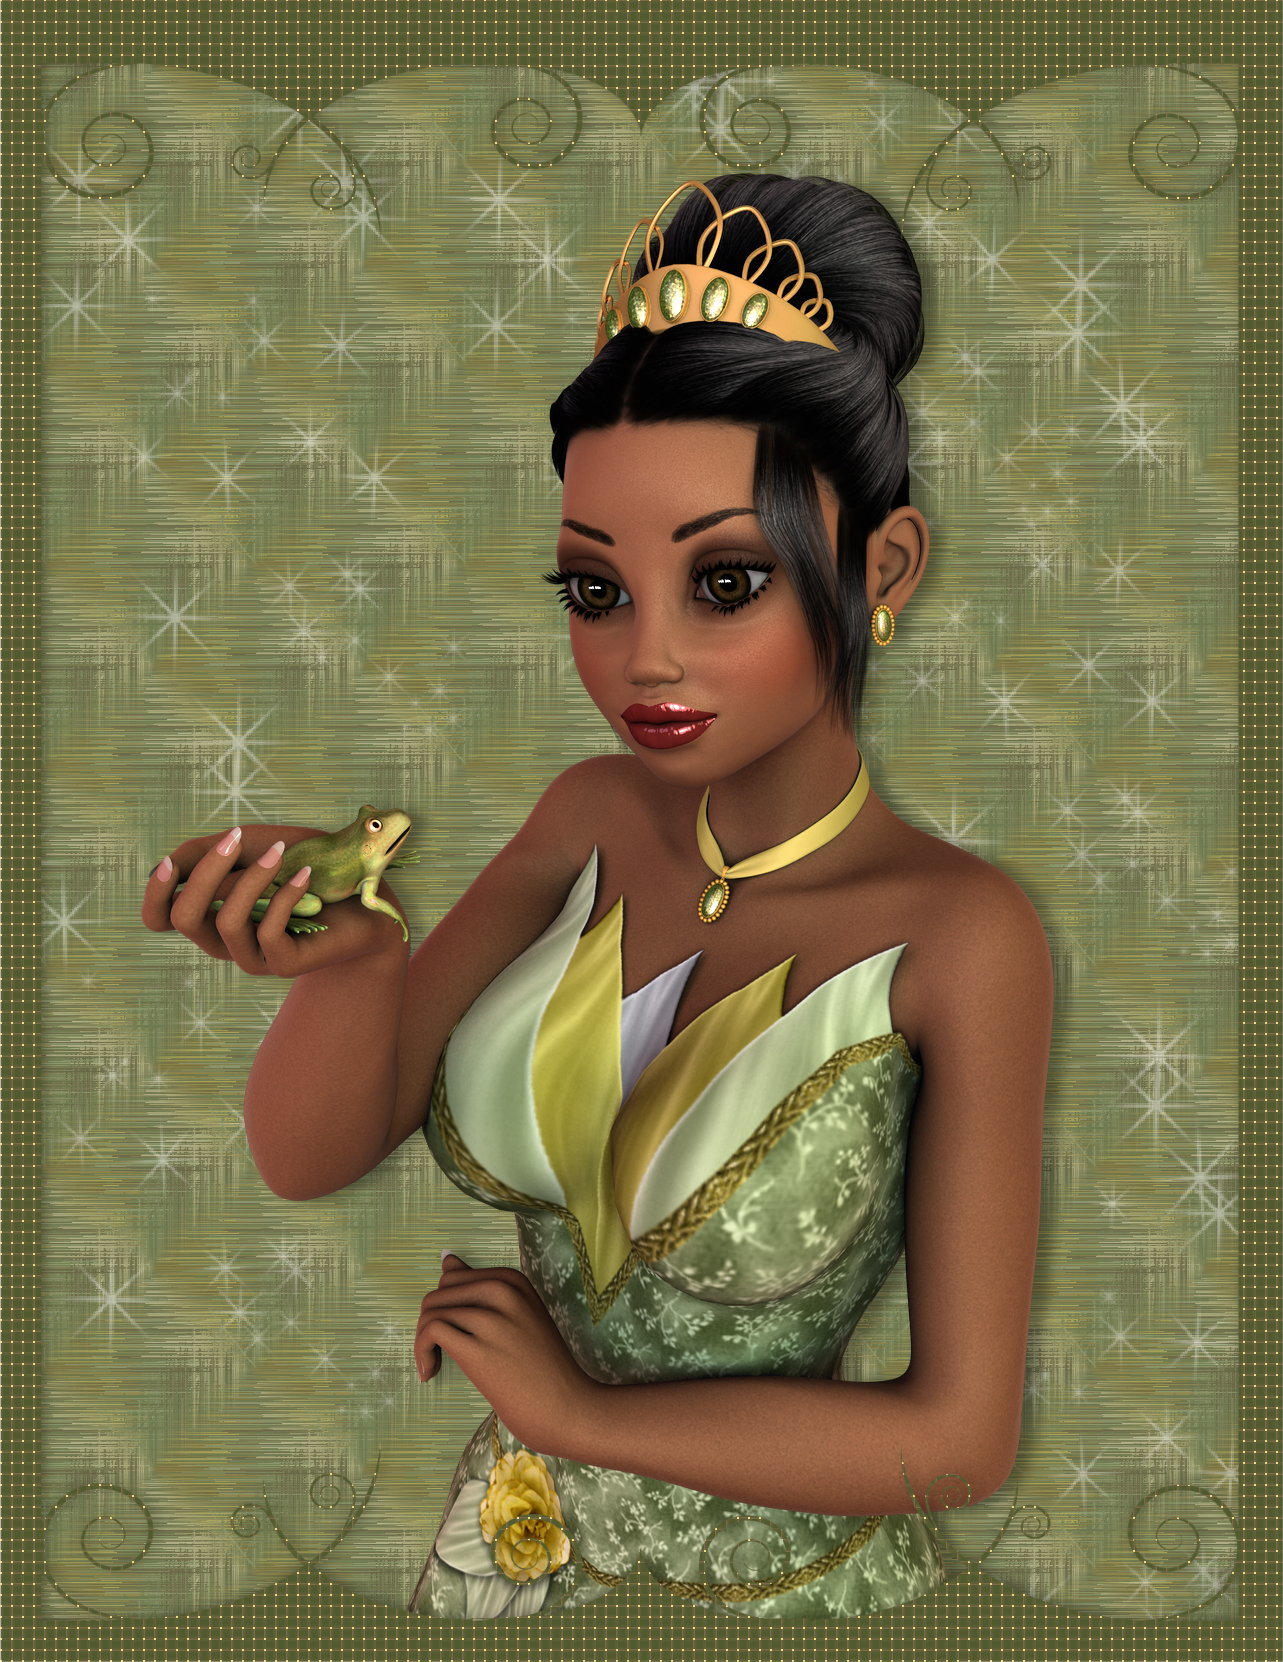 Princess and Frog by kelchris3